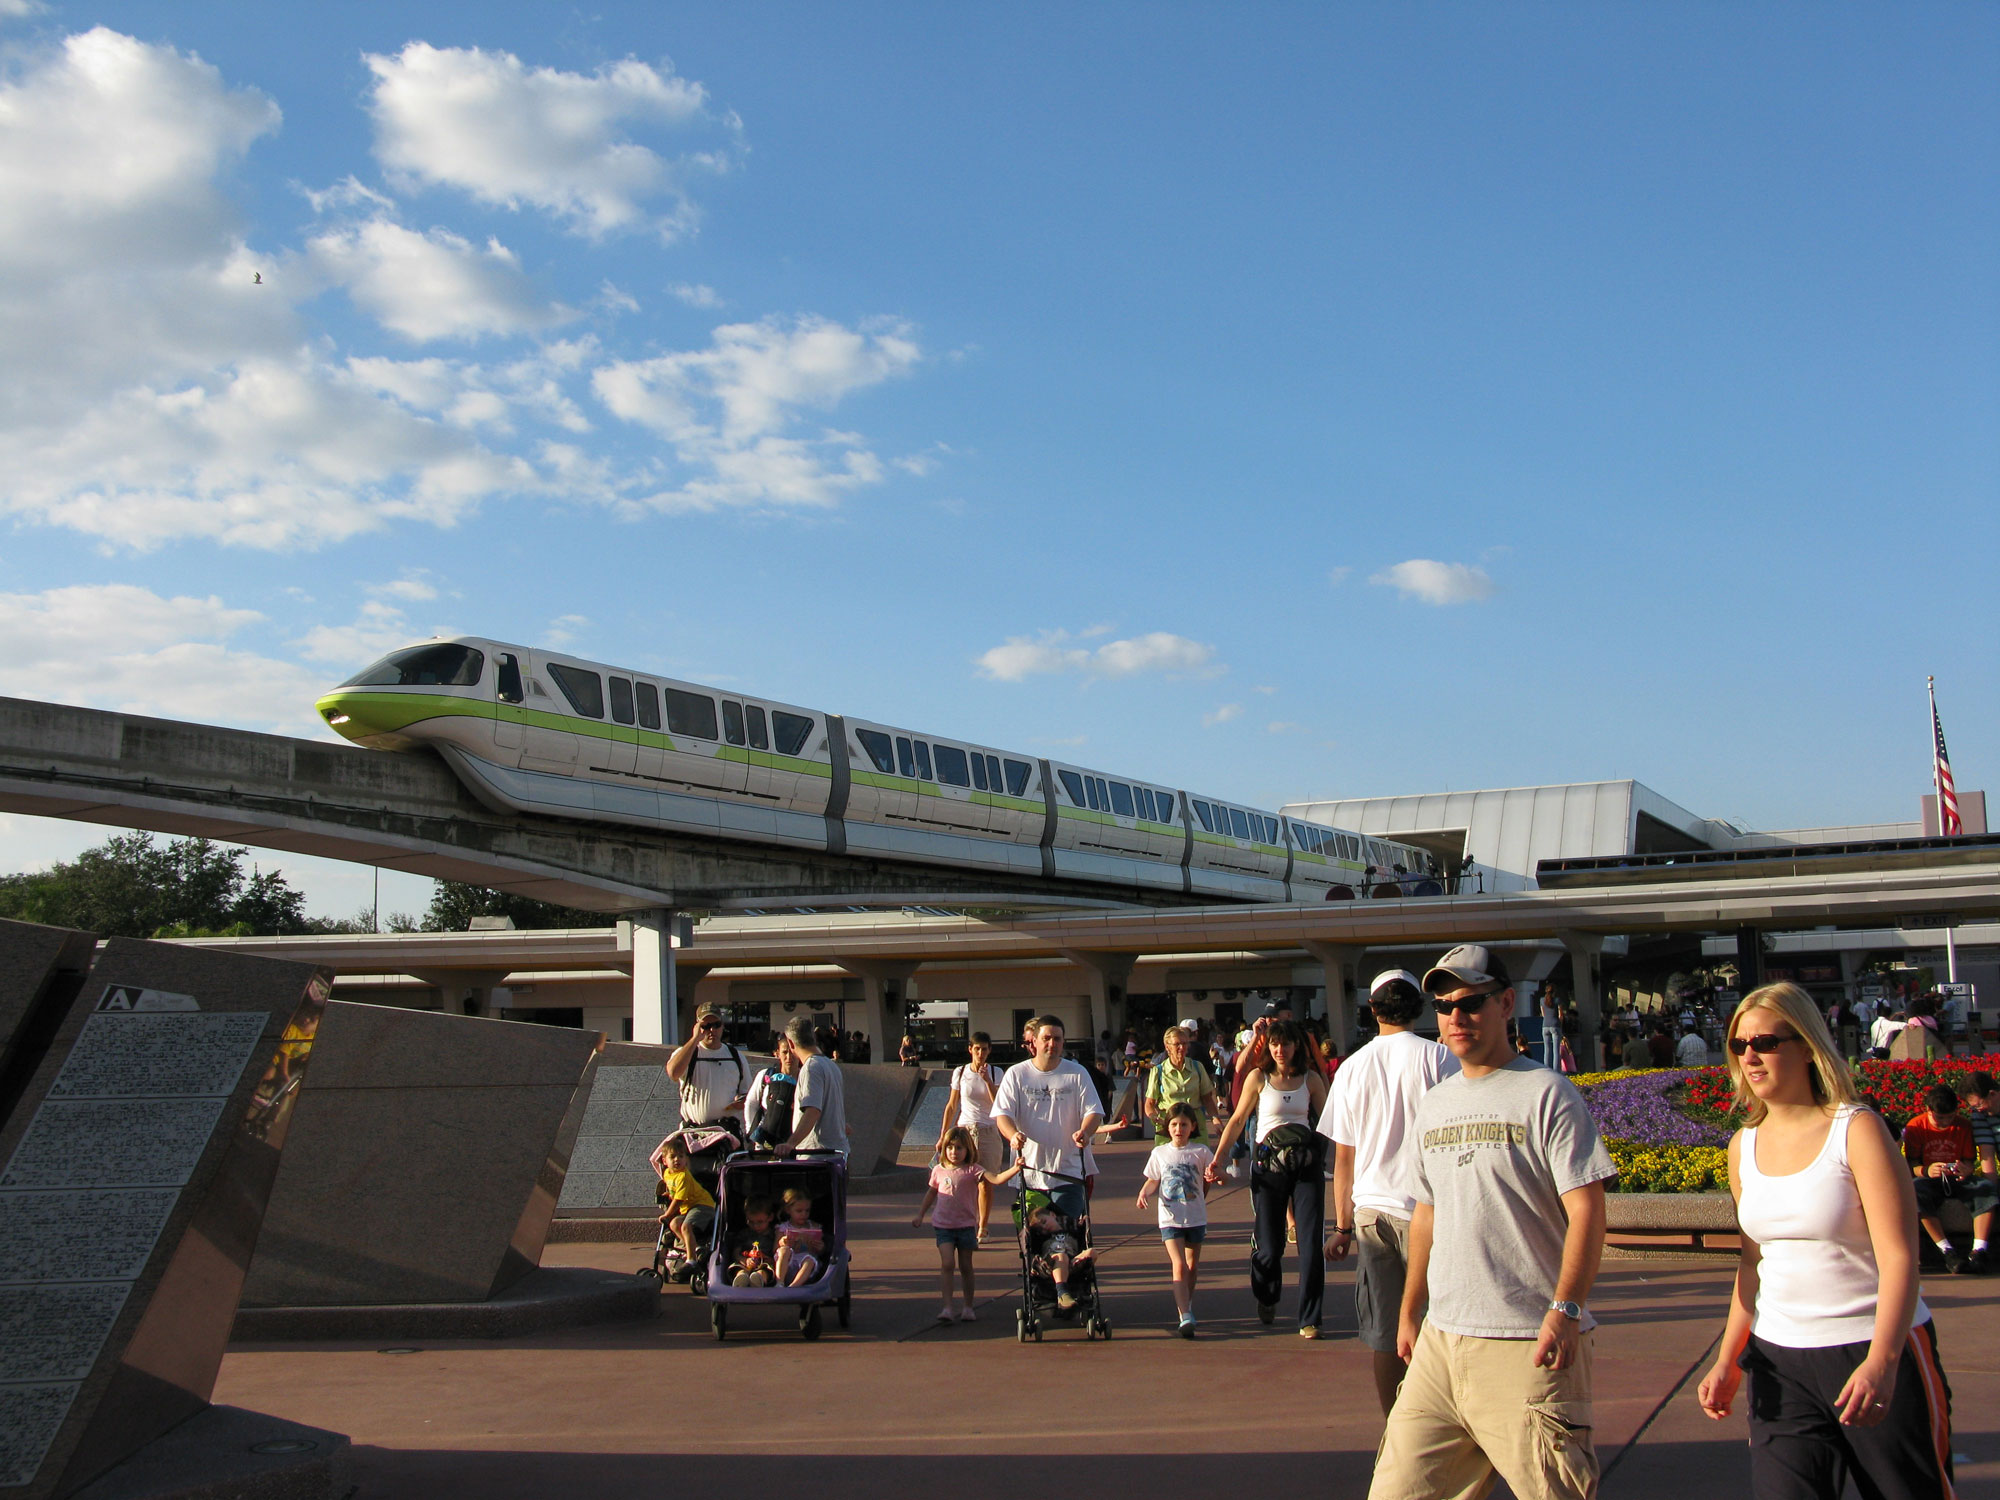 Lime Green monorail at Epcot entrance